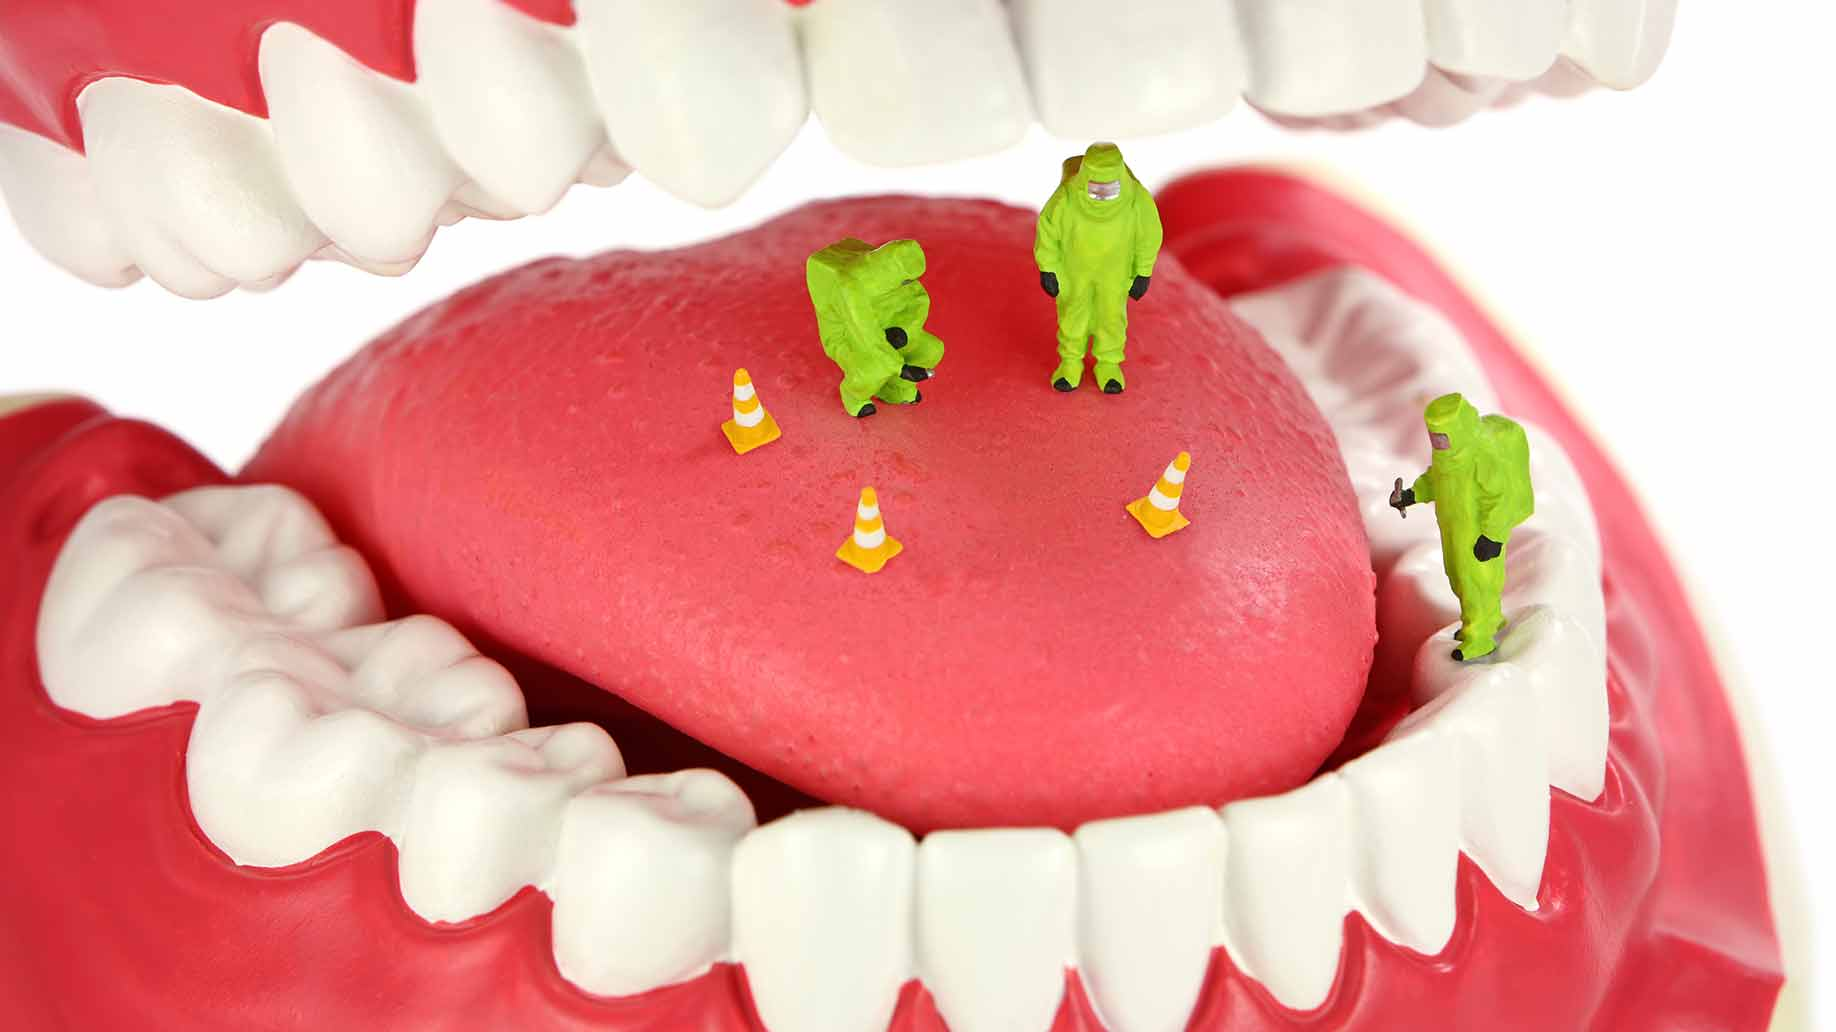 bad breath causes halitosis how to get rid of naturally